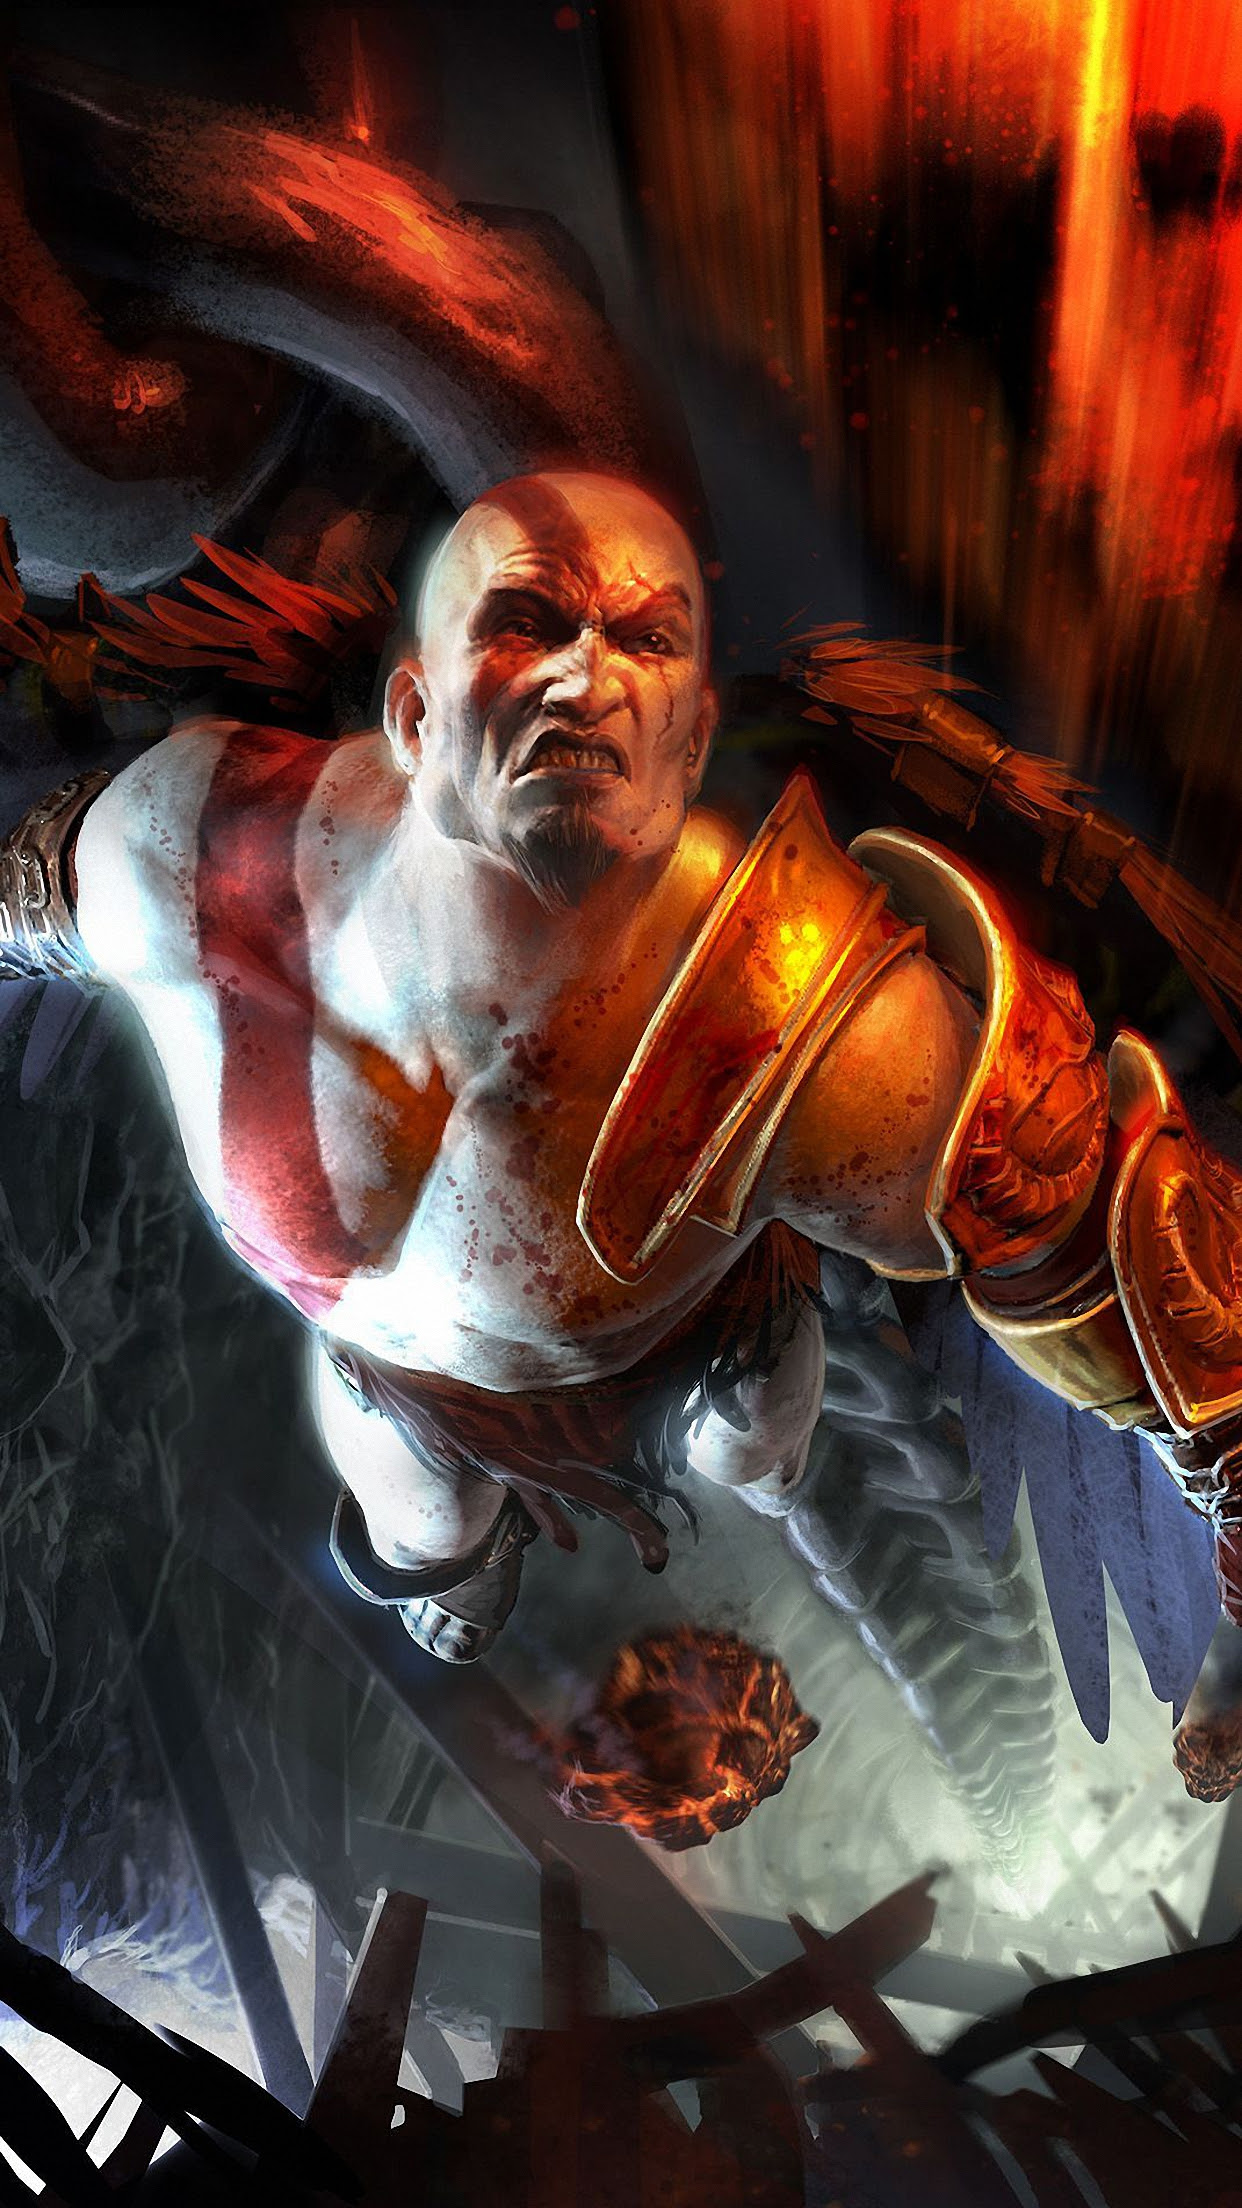 God Of War Kratos 2 Wallpaper For Iphone X 8 7 6 Free